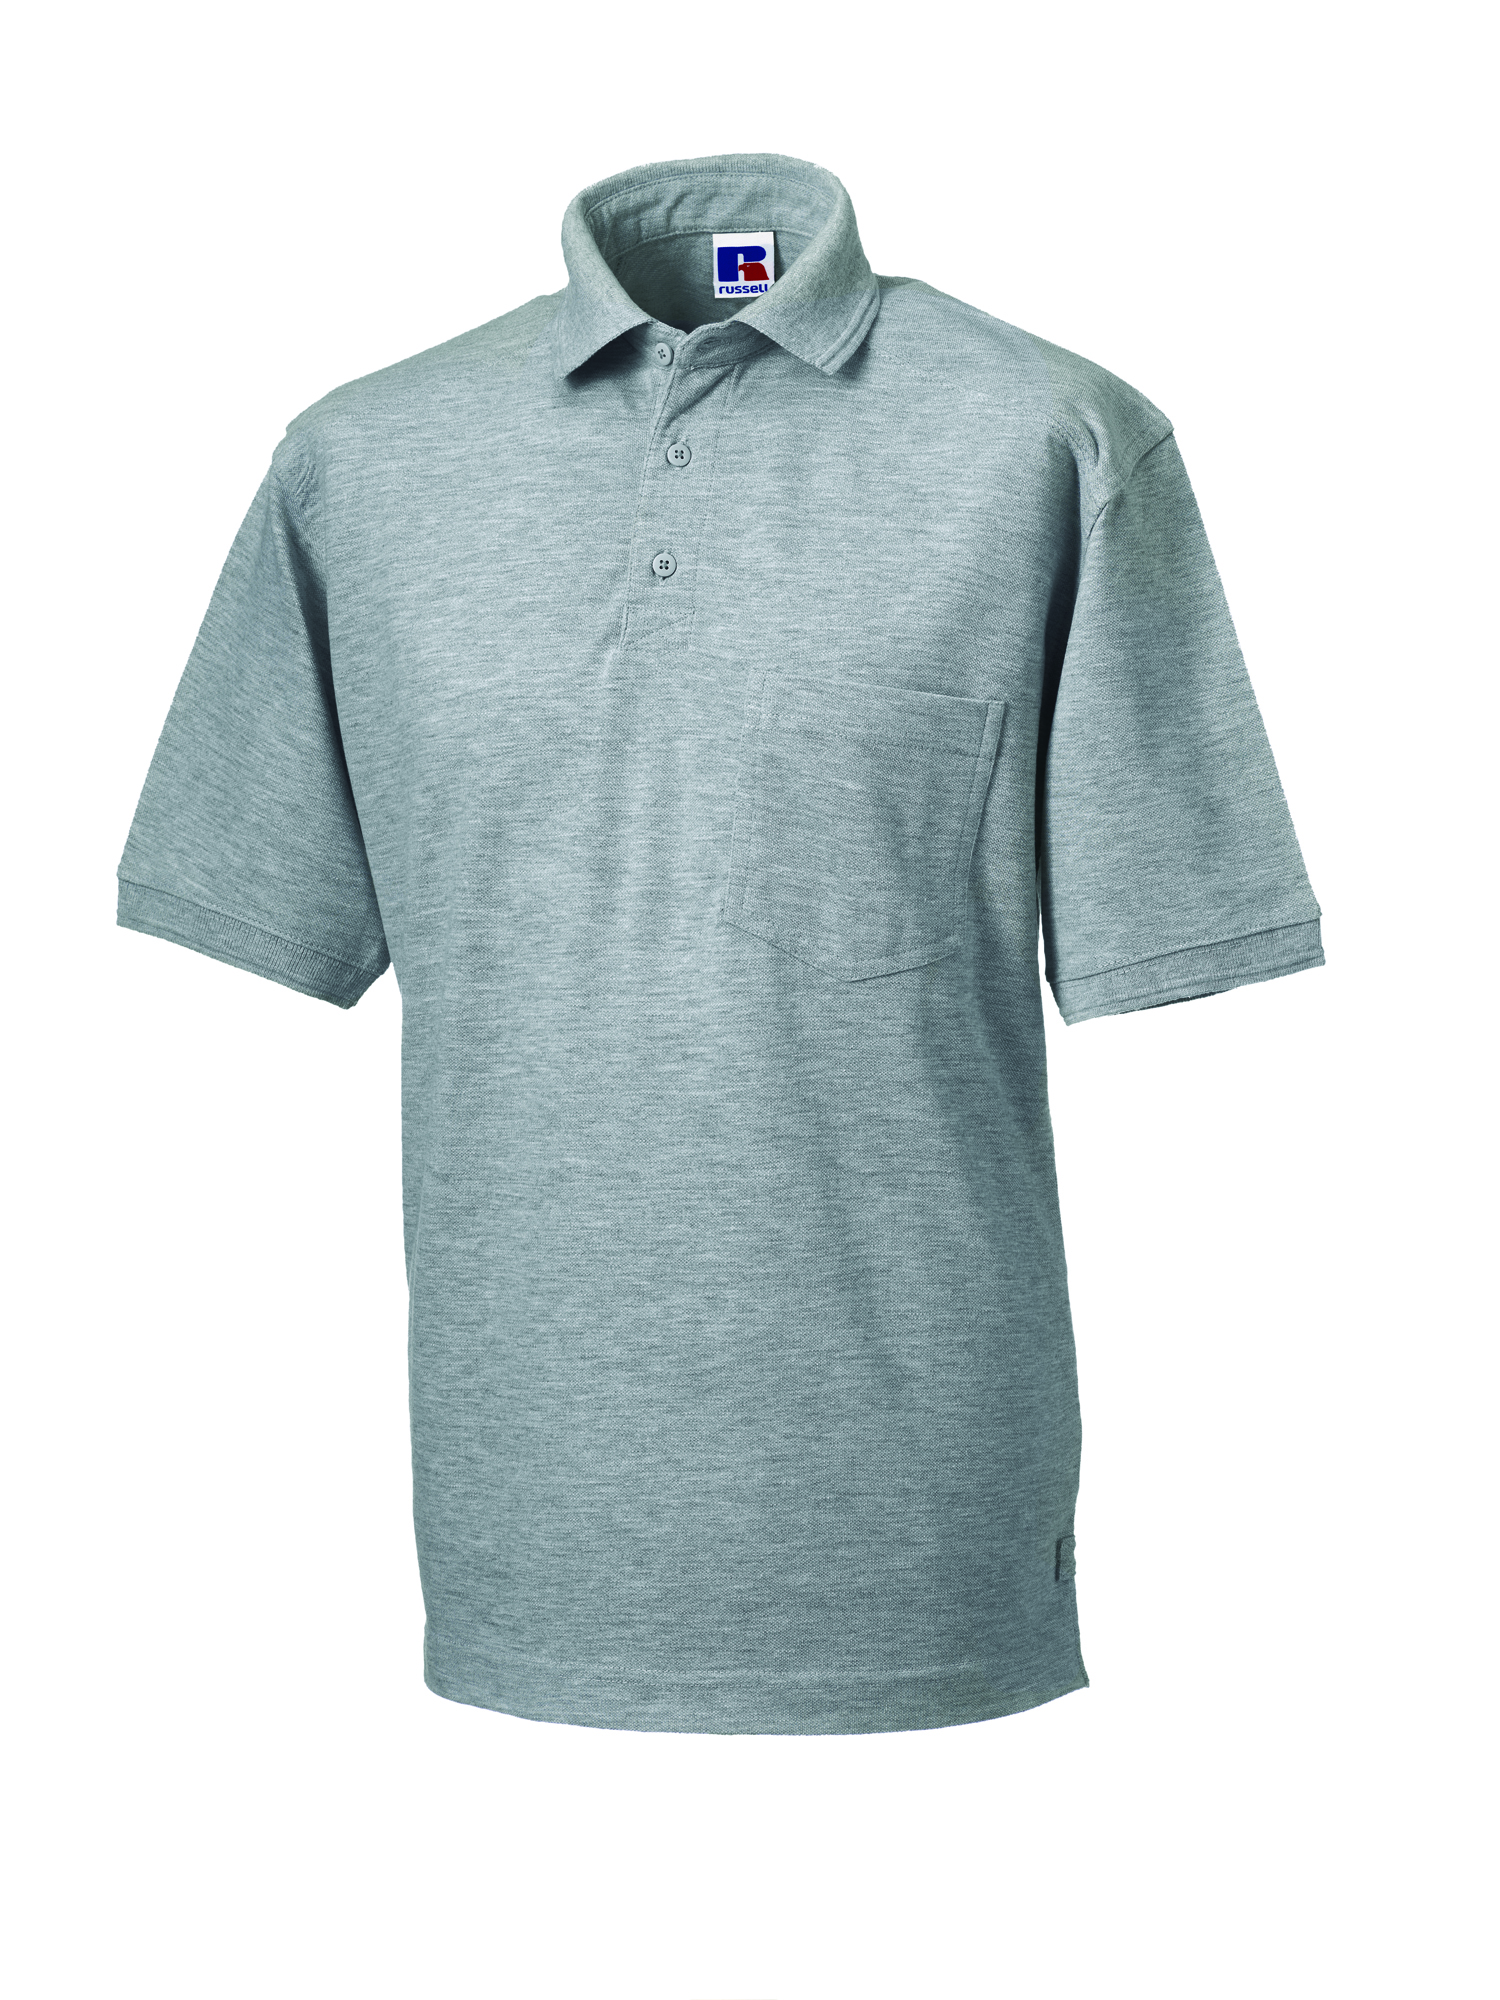 Heavy Duty Cotton Polo